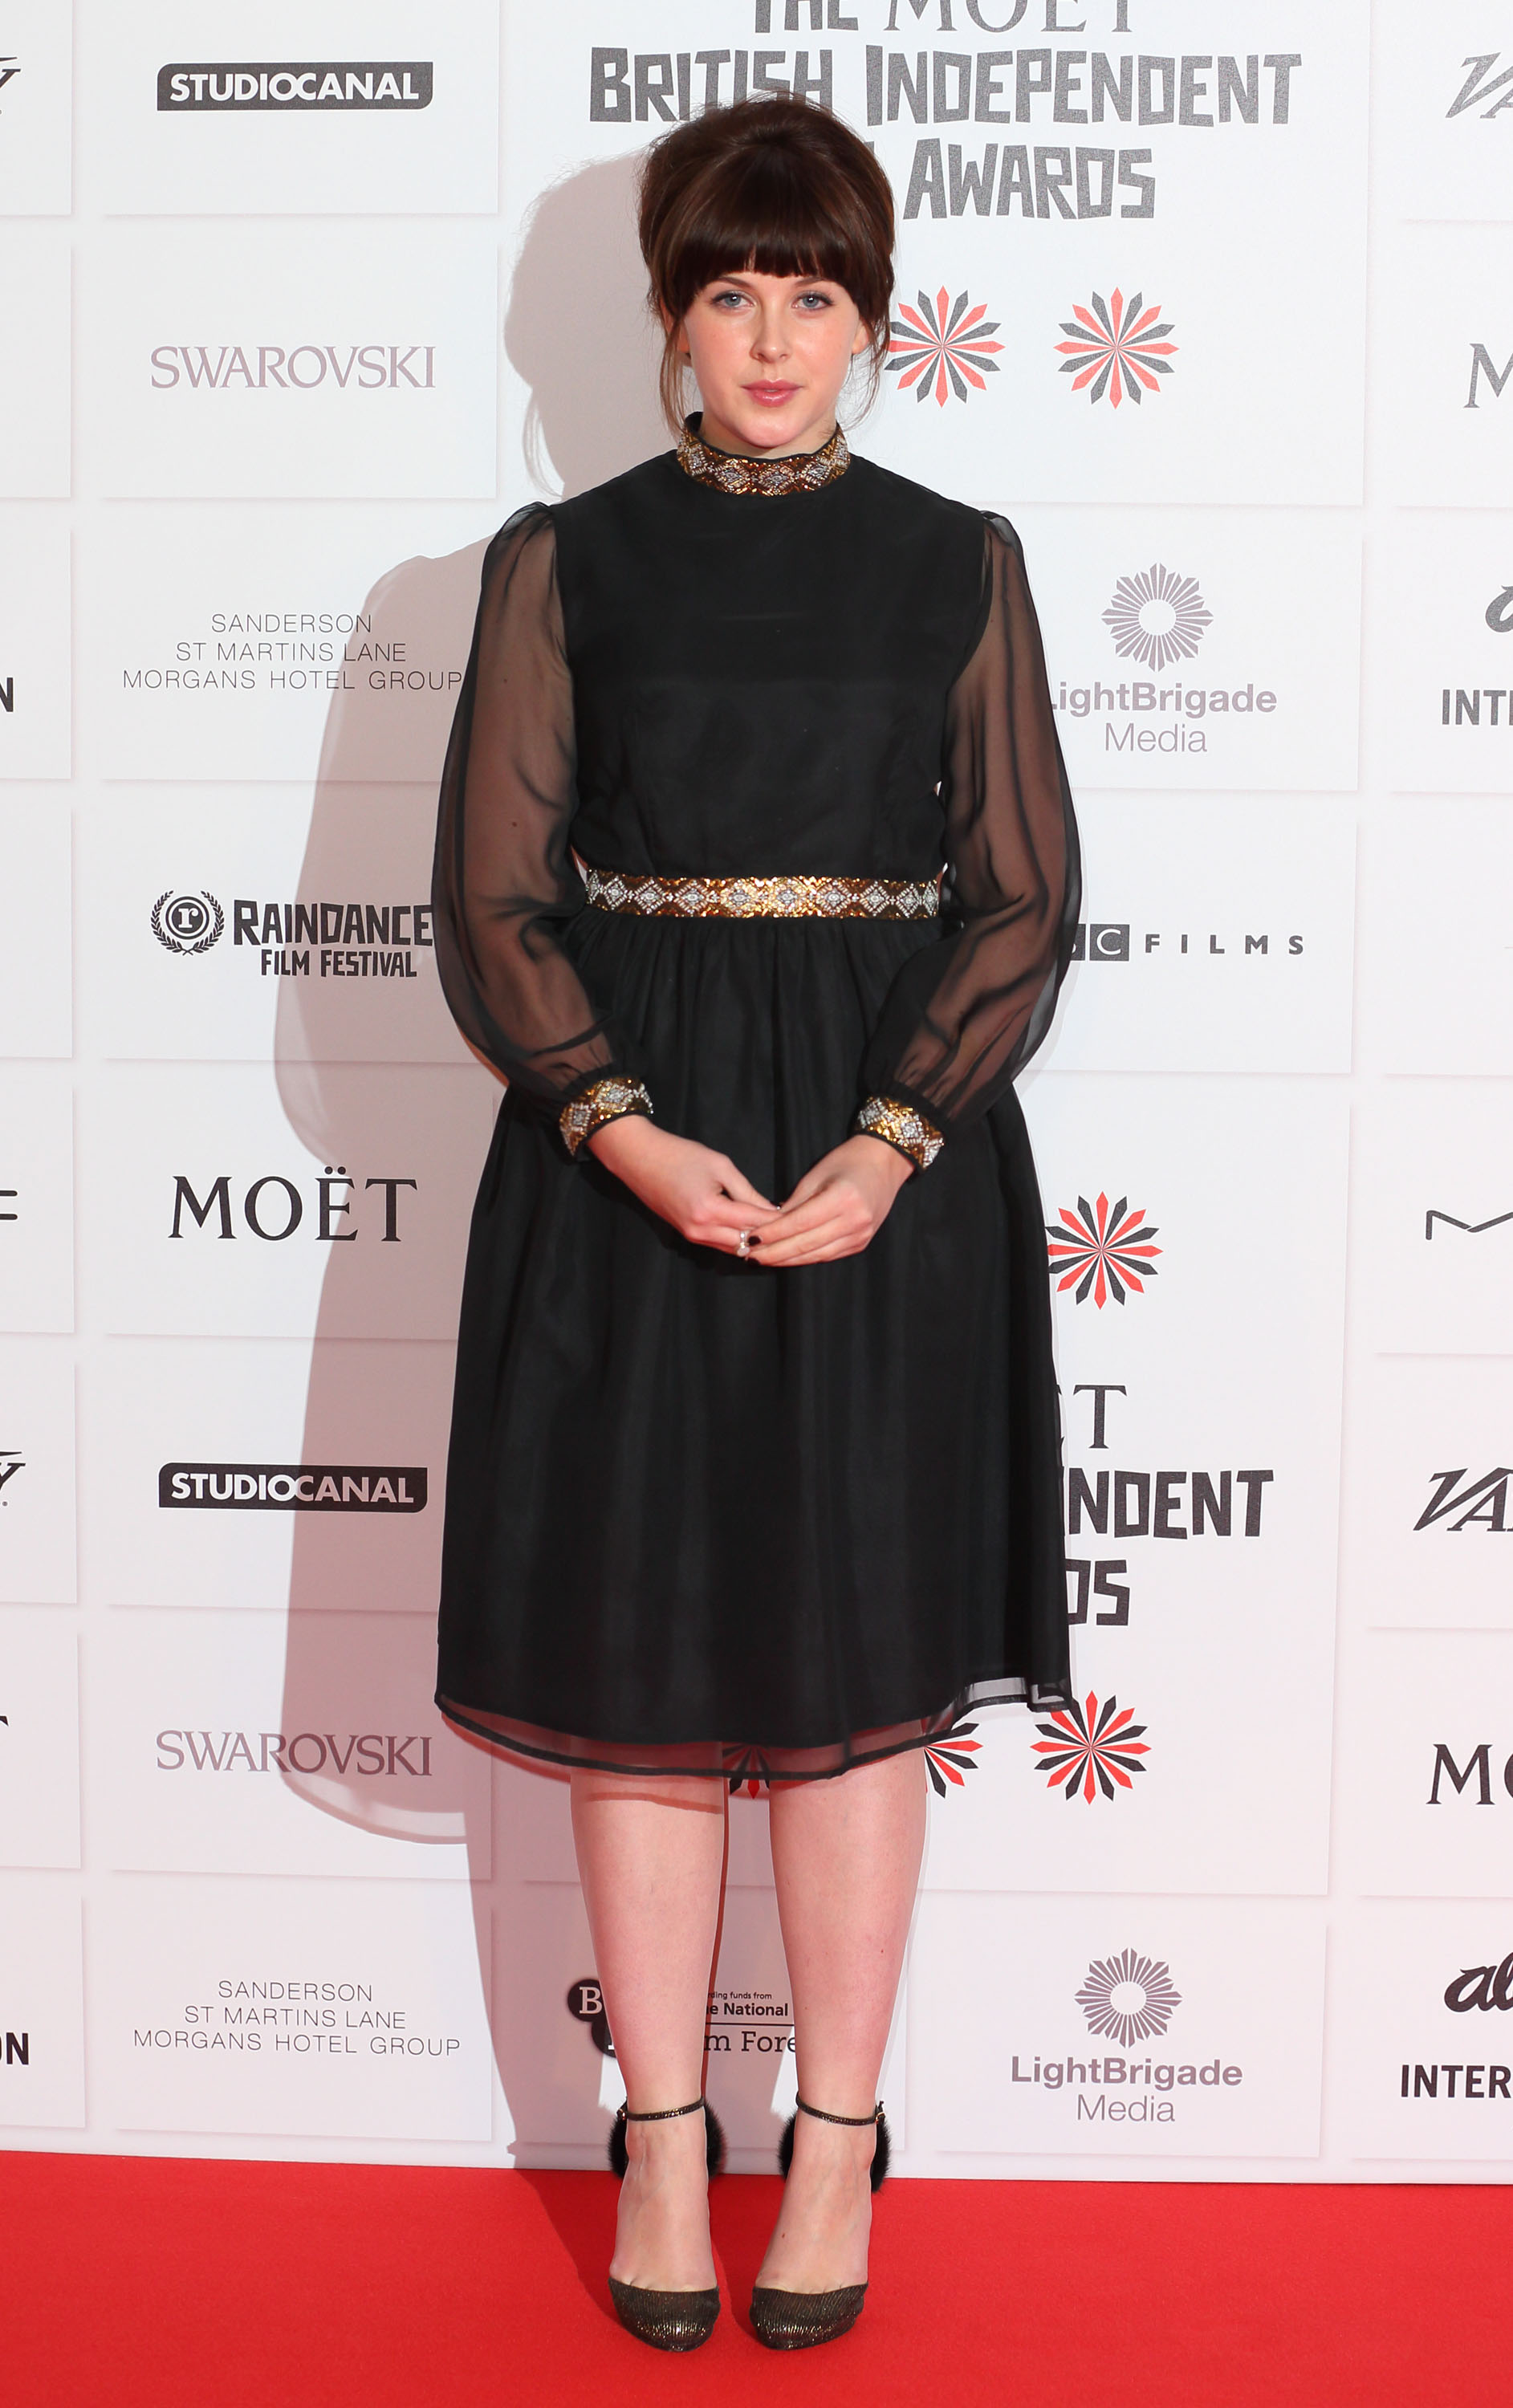 Alexandra Roach appeared at the BIFAs.